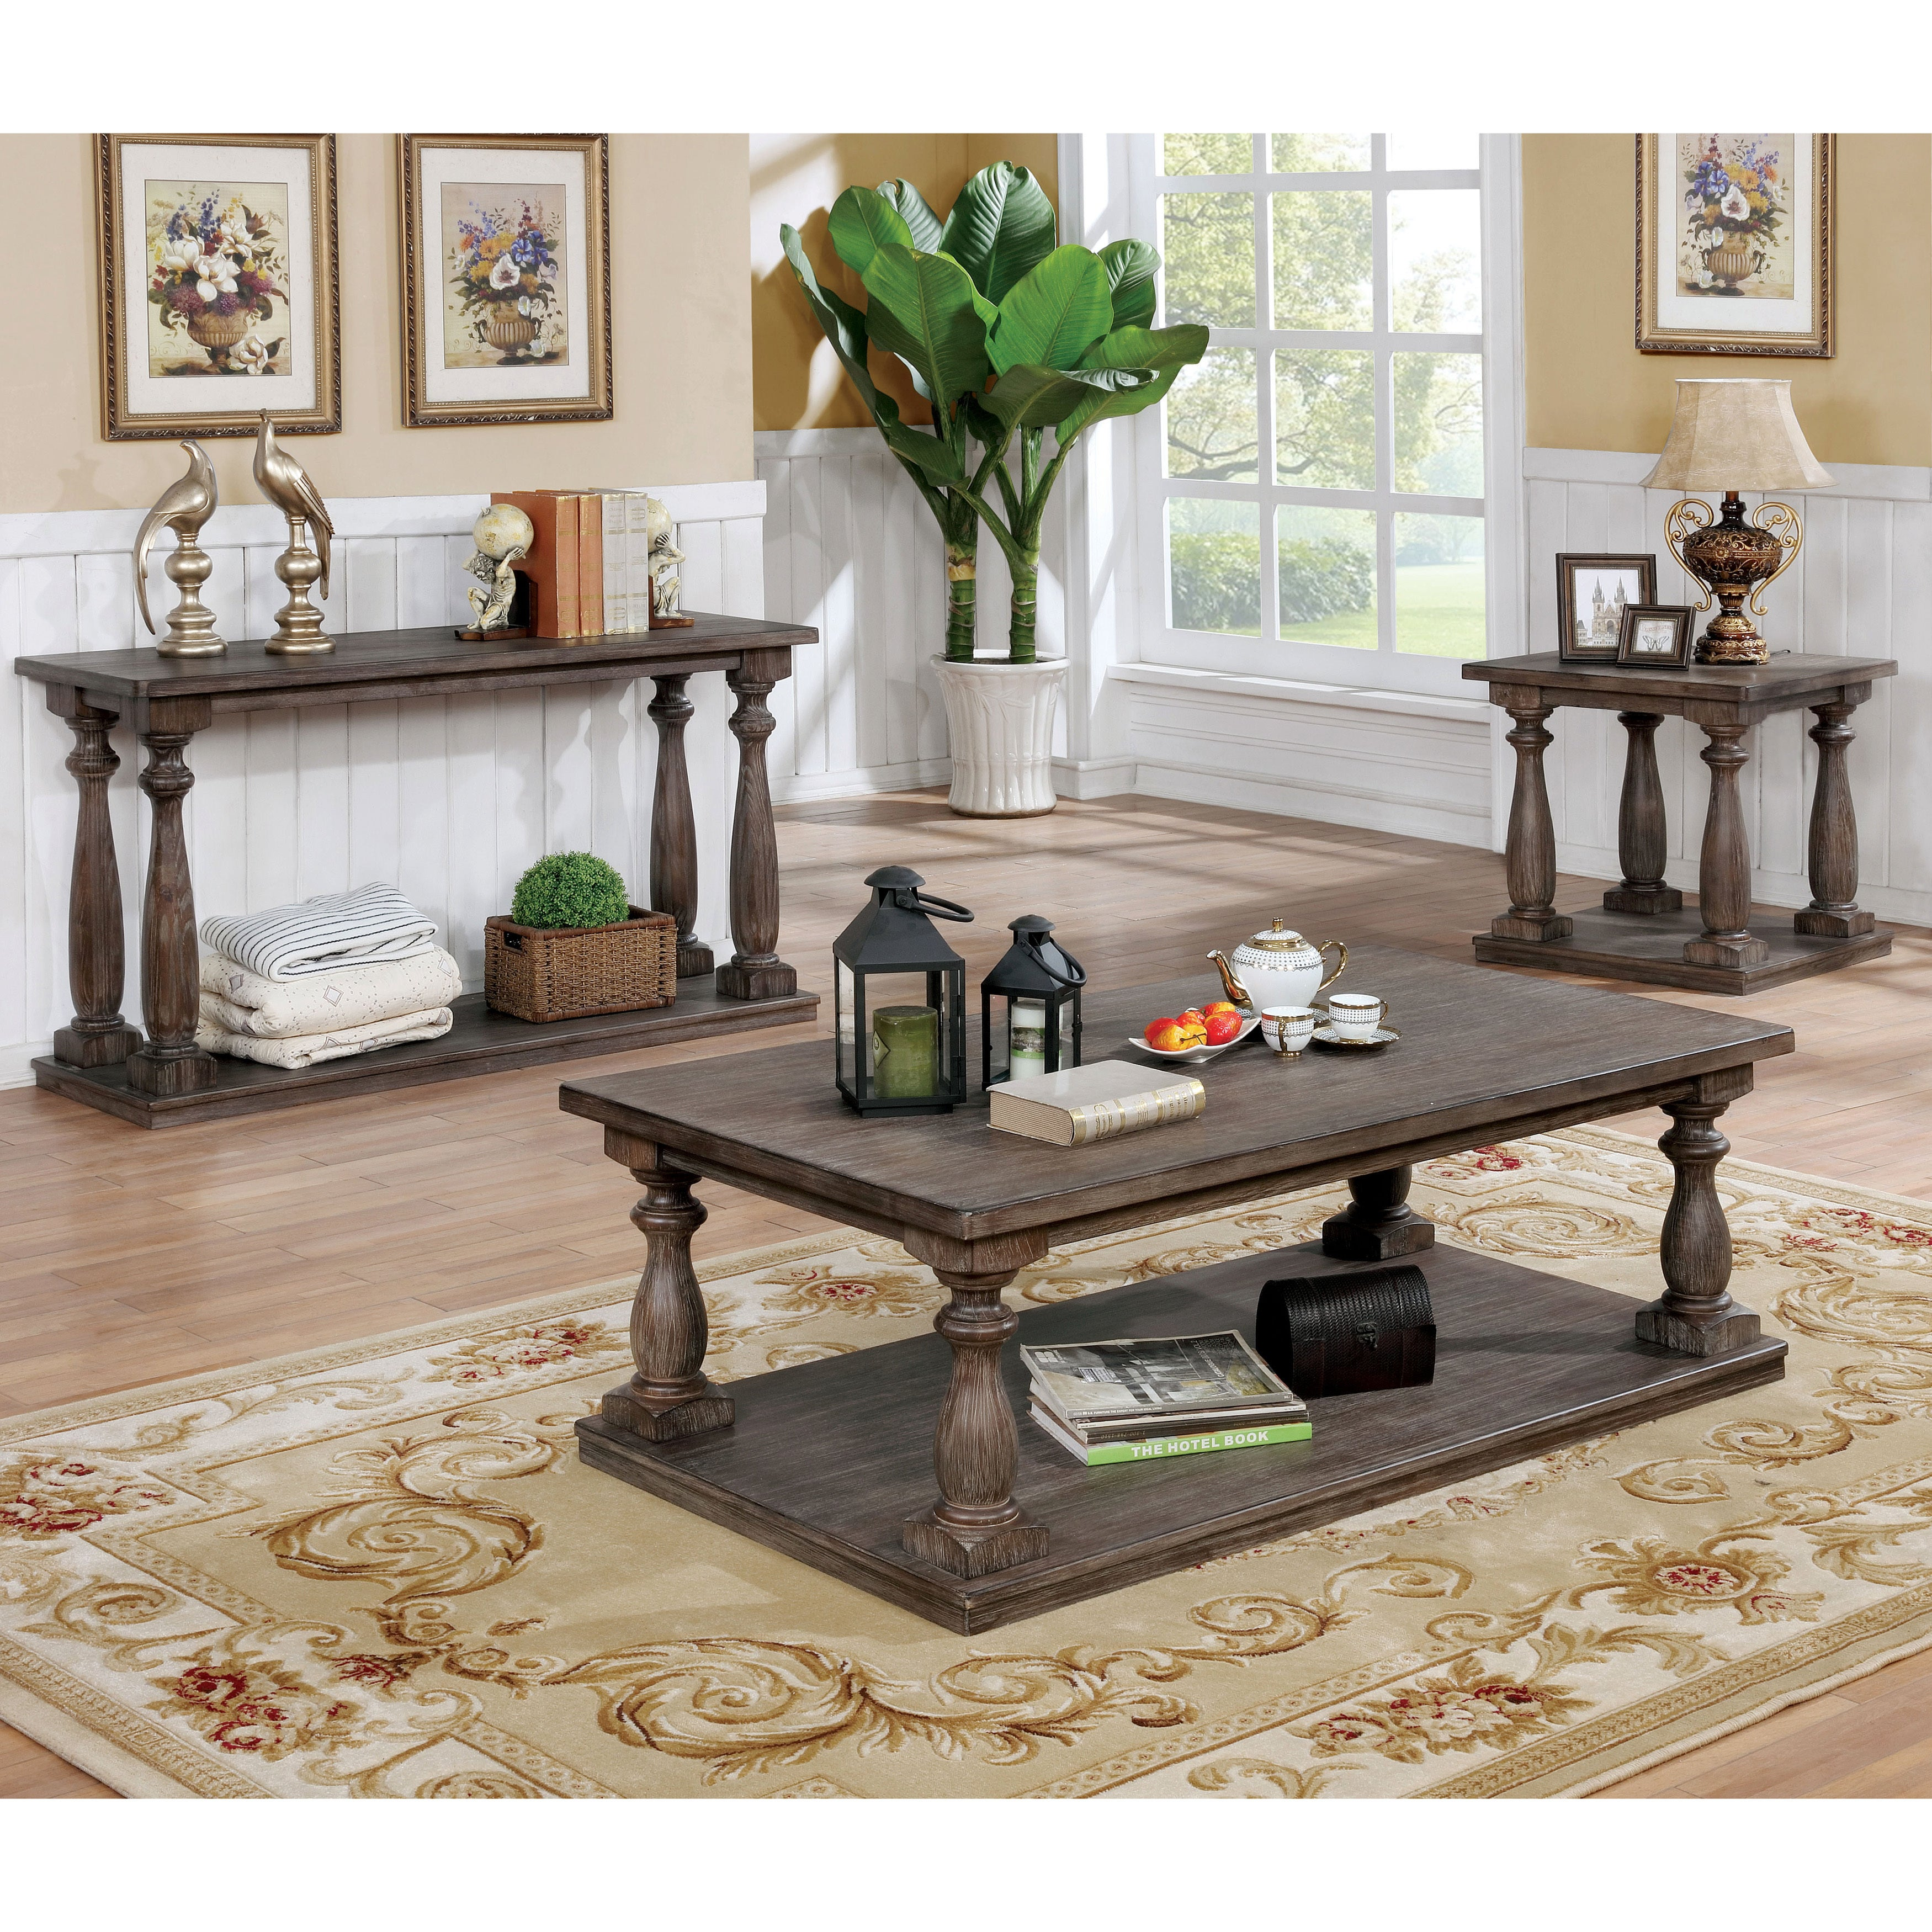 Furniture Of America Jessa Rustic Country Style Open 54 Inch Wood